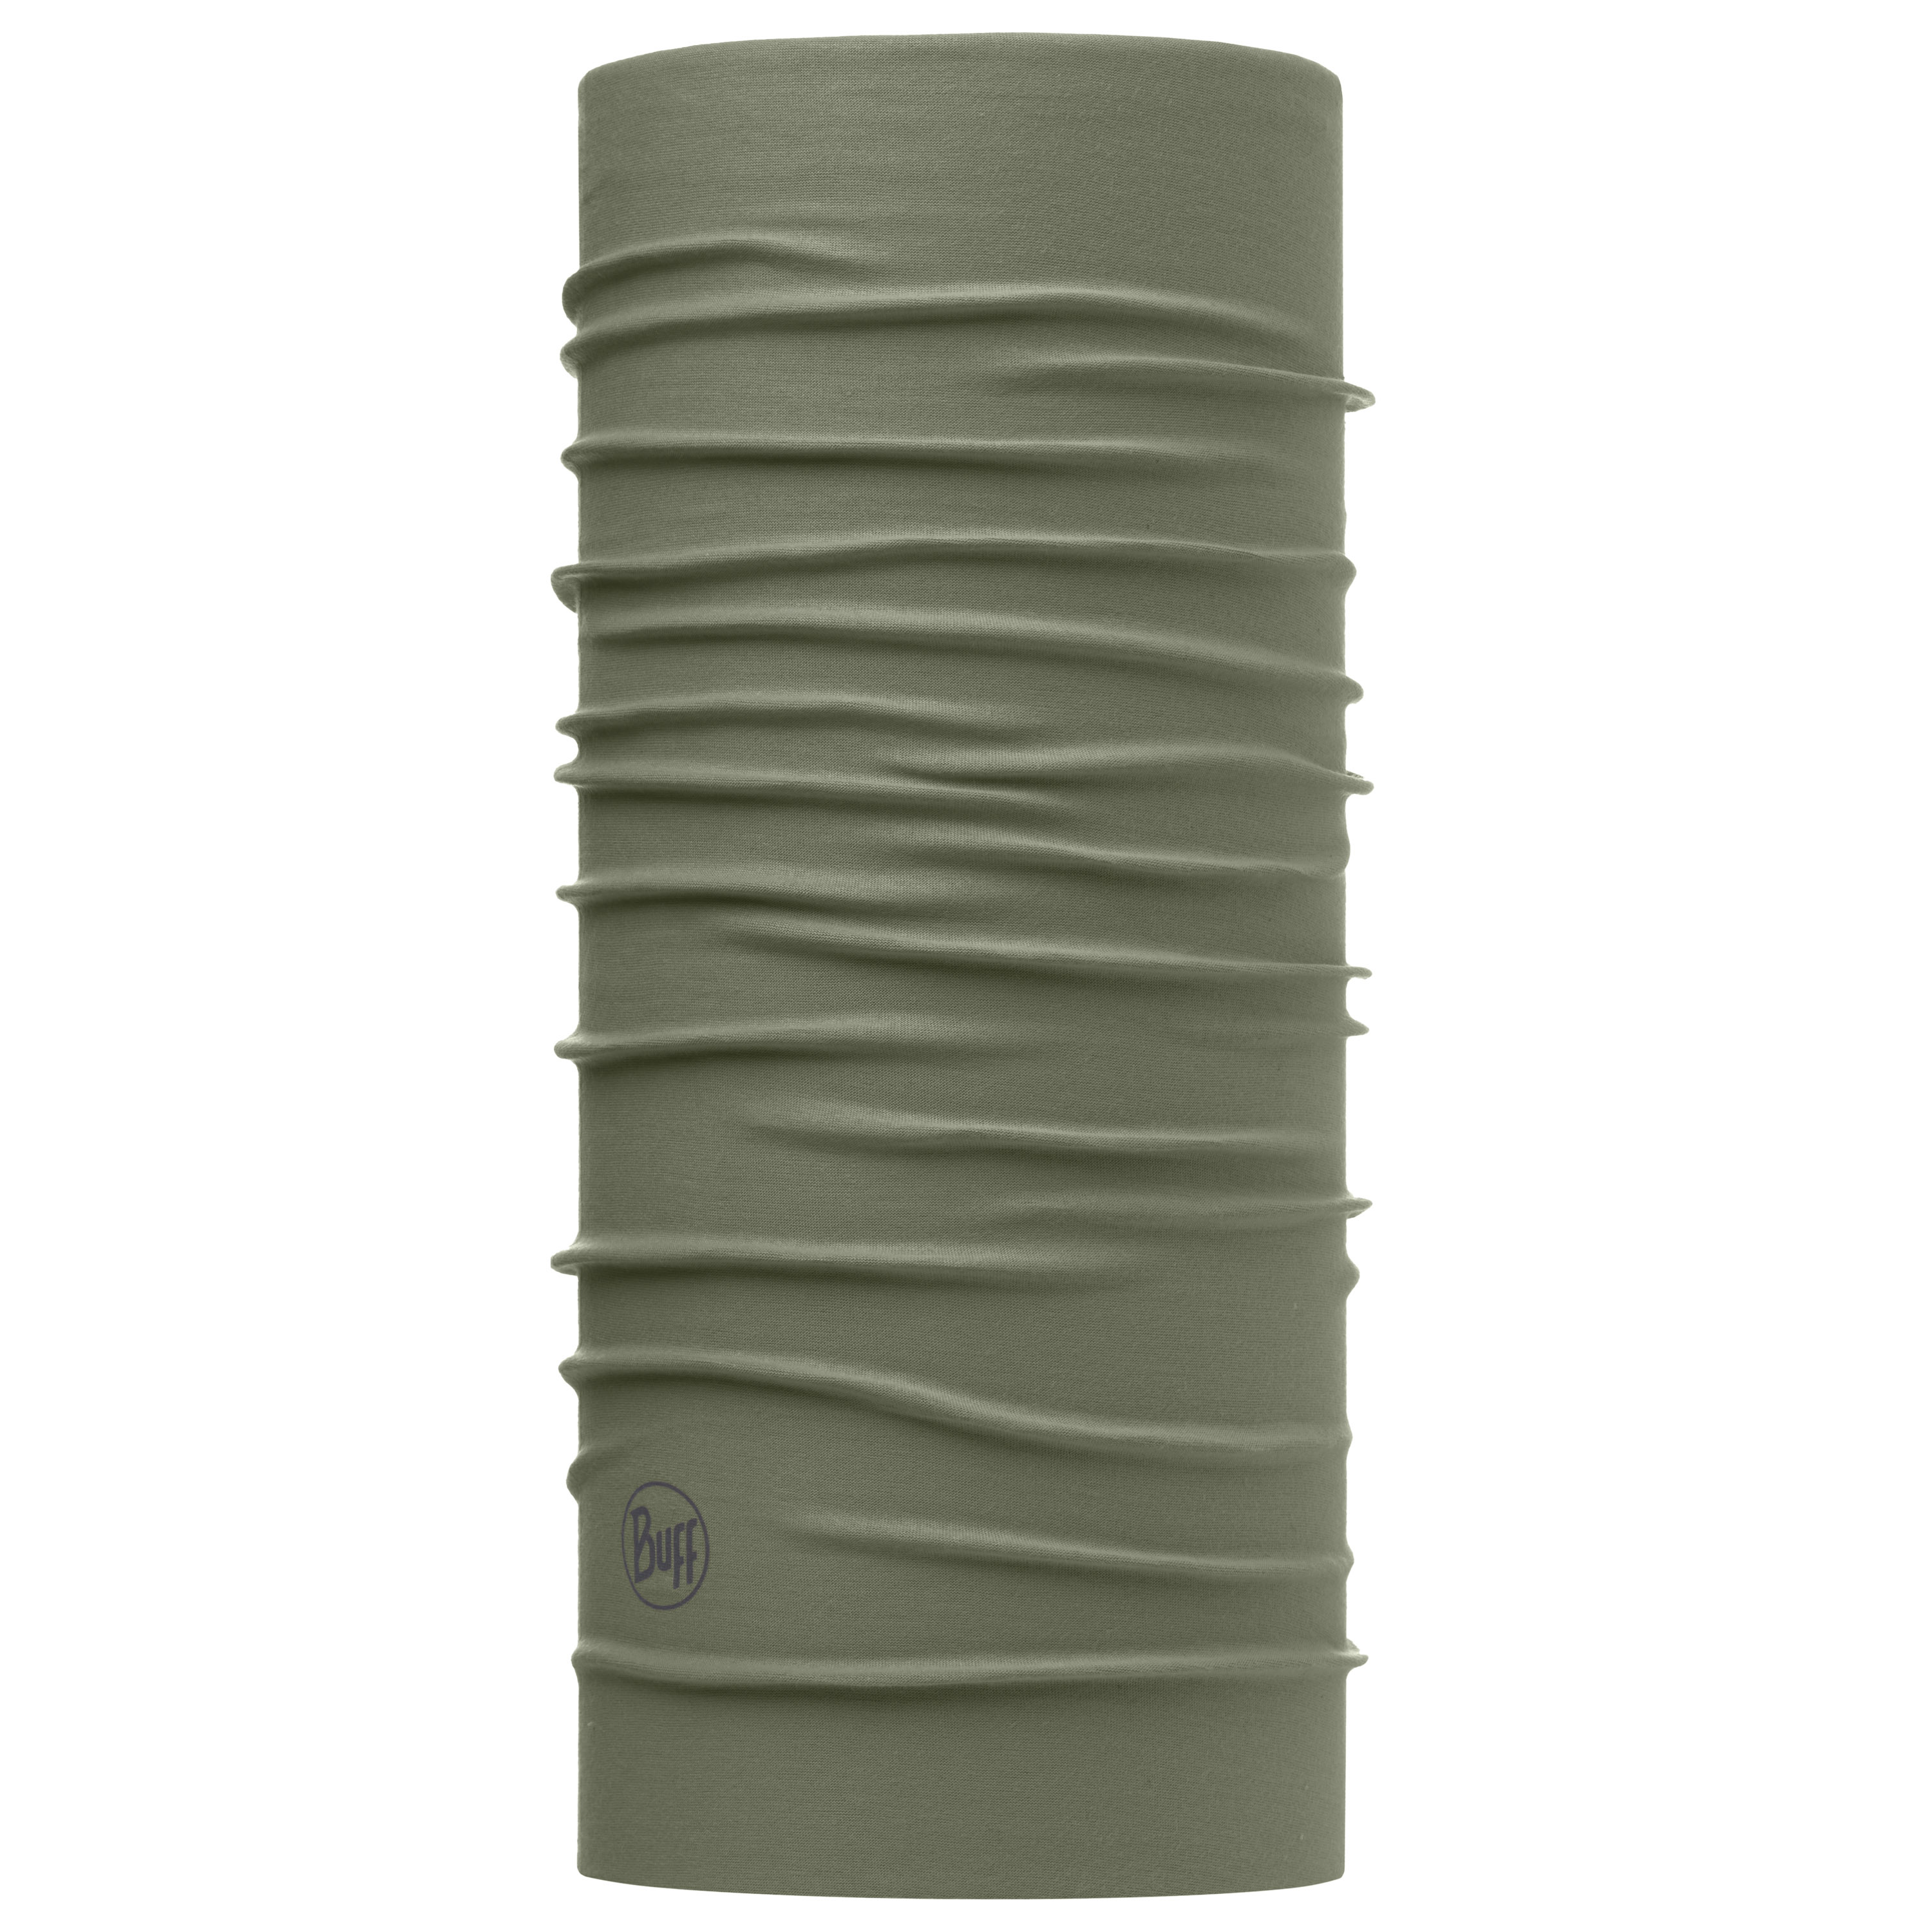 Buff Schlauchtuch UV Insect Shield Solid Dusty Olive